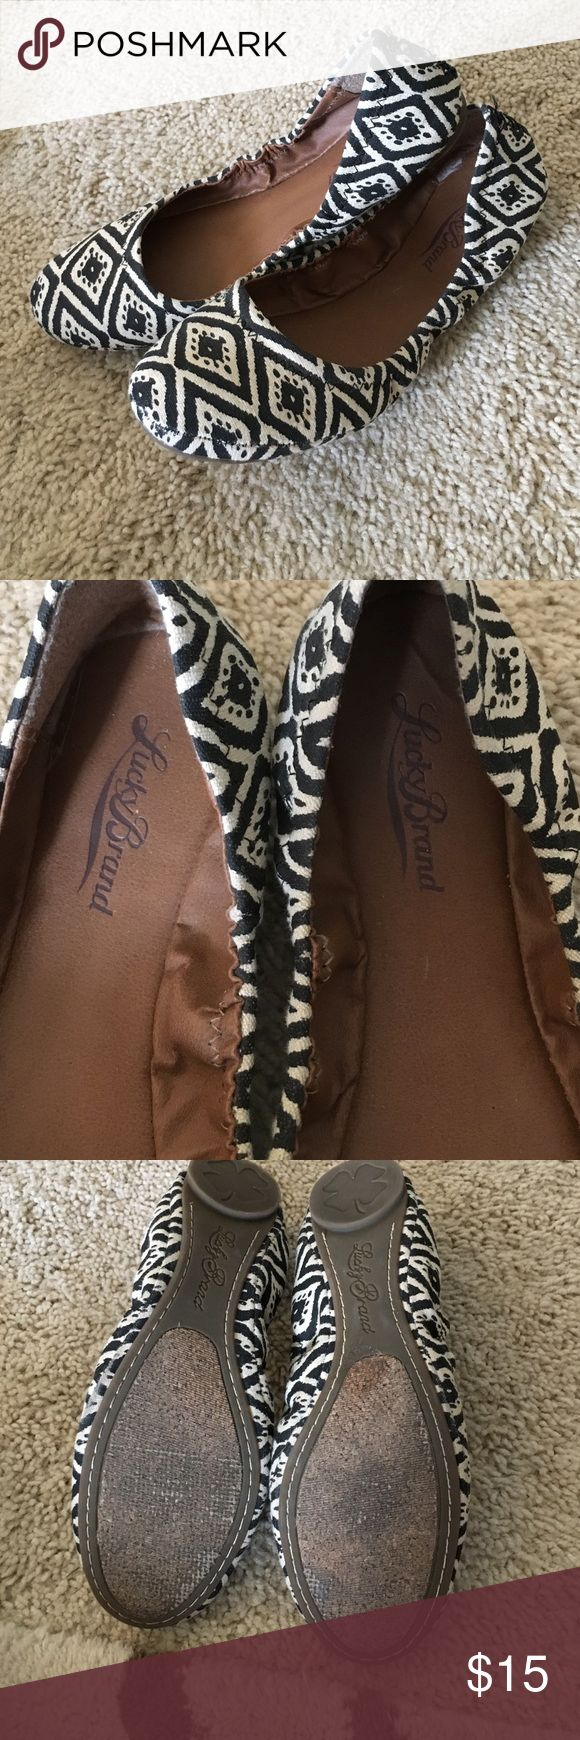 Black and cream flats Woven flats in Aztec style by Lucky Brand Lucky Brand Shoes Flats & Loafers